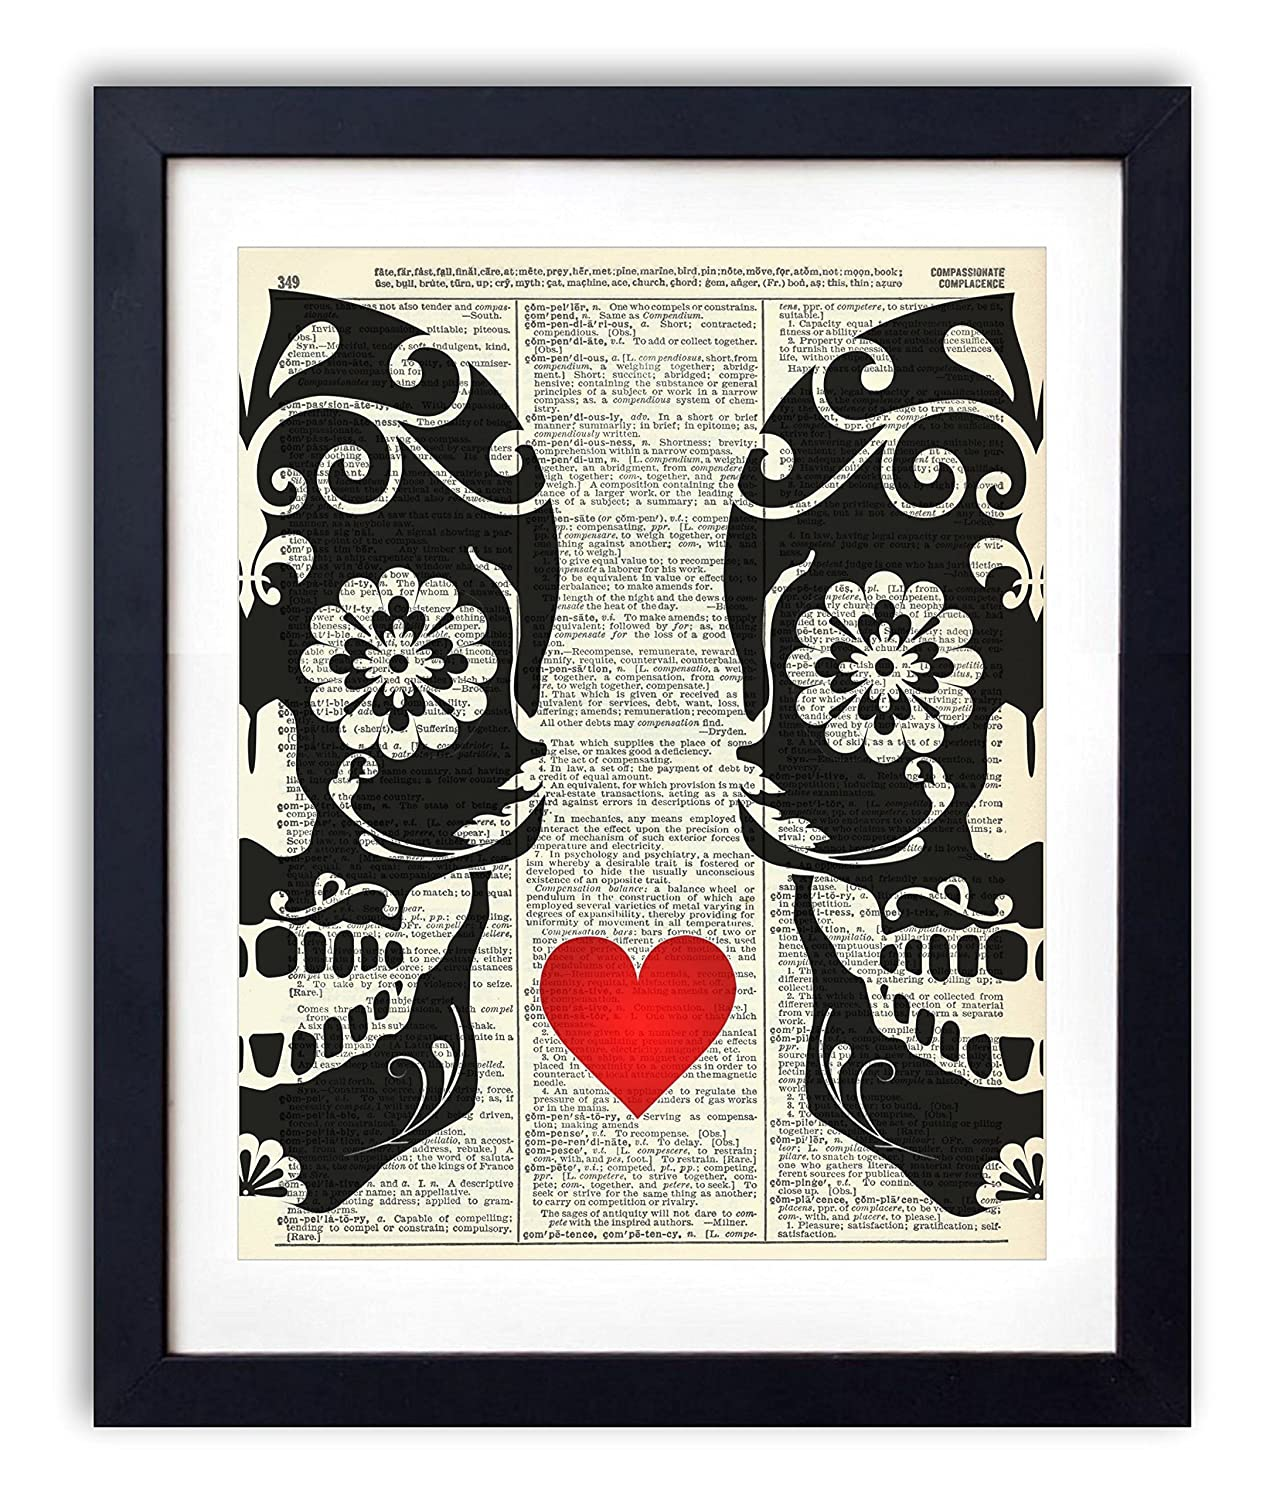 Sugar Skull Love Upcycled Wall Art Vintage Dictionary Art Print 8x10 inches / 20.32 x 25.4 cm Unframed